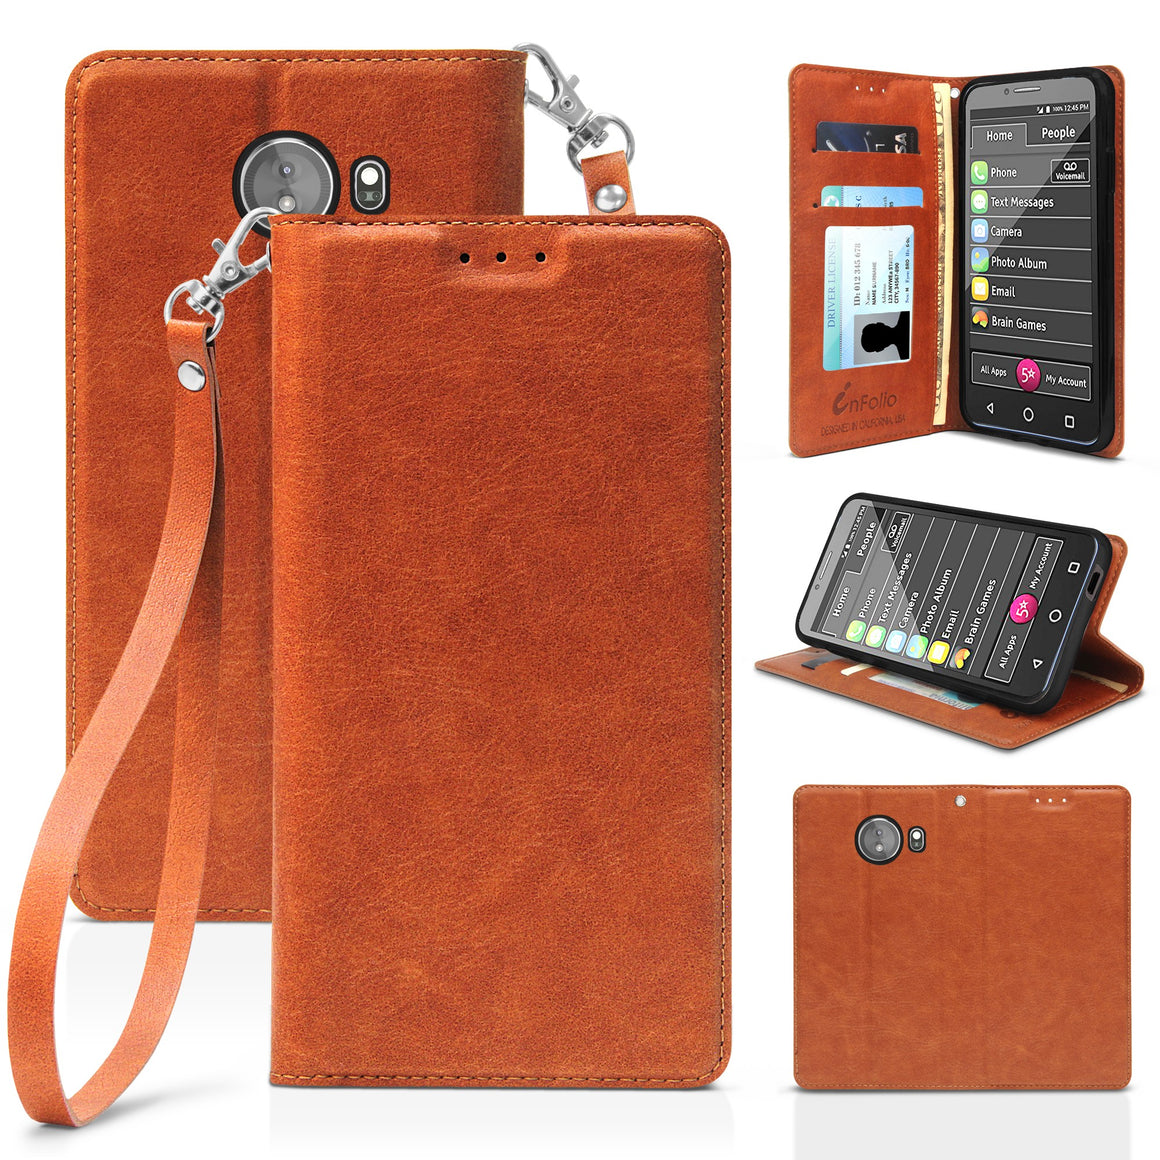 "Infolio L For Greatcall Jitterbug XL 5.5"" Brown with Clear Gel"